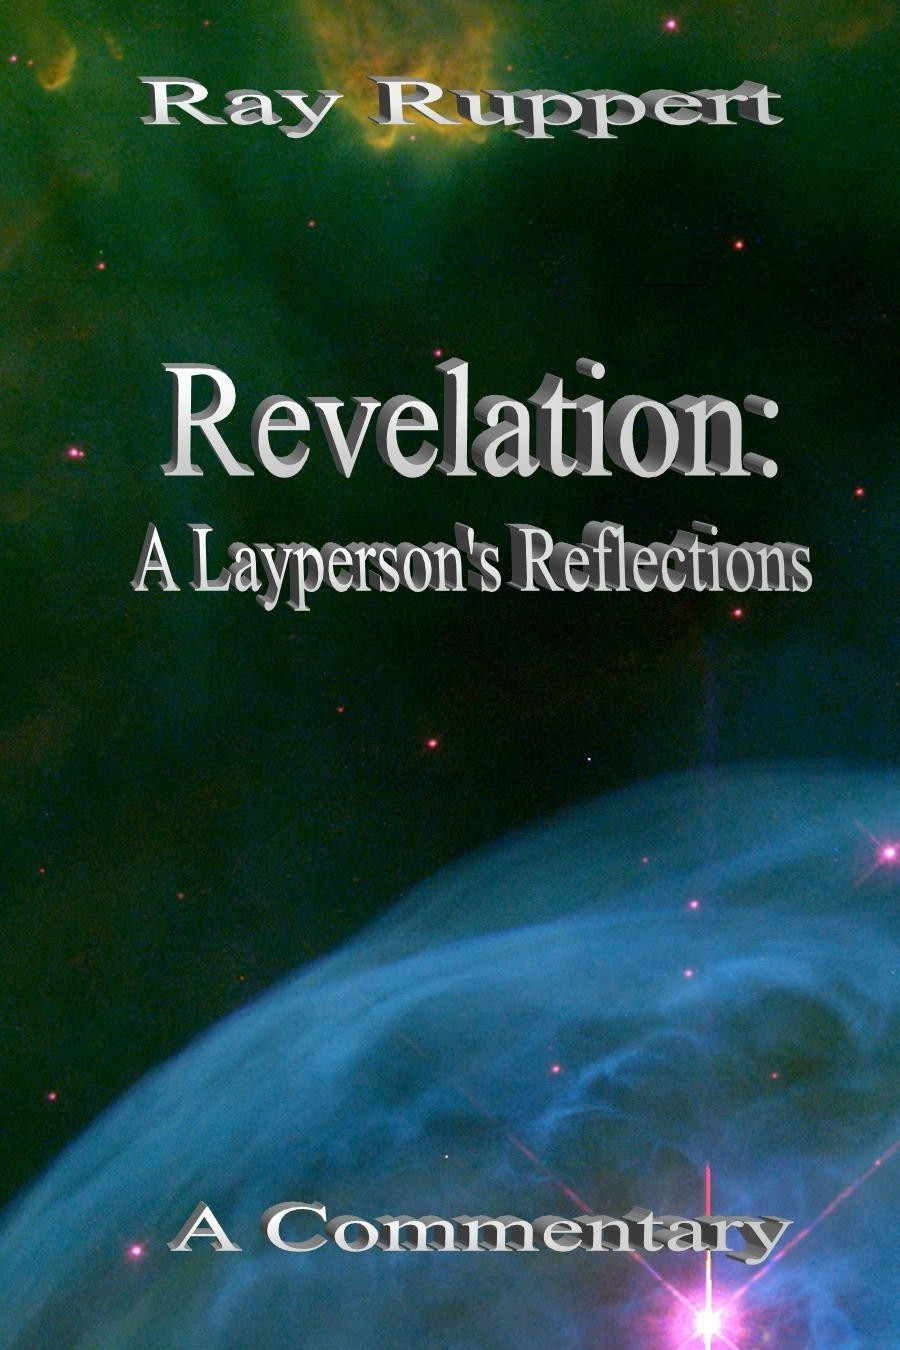 Revelation: A Lay Person's Reflections